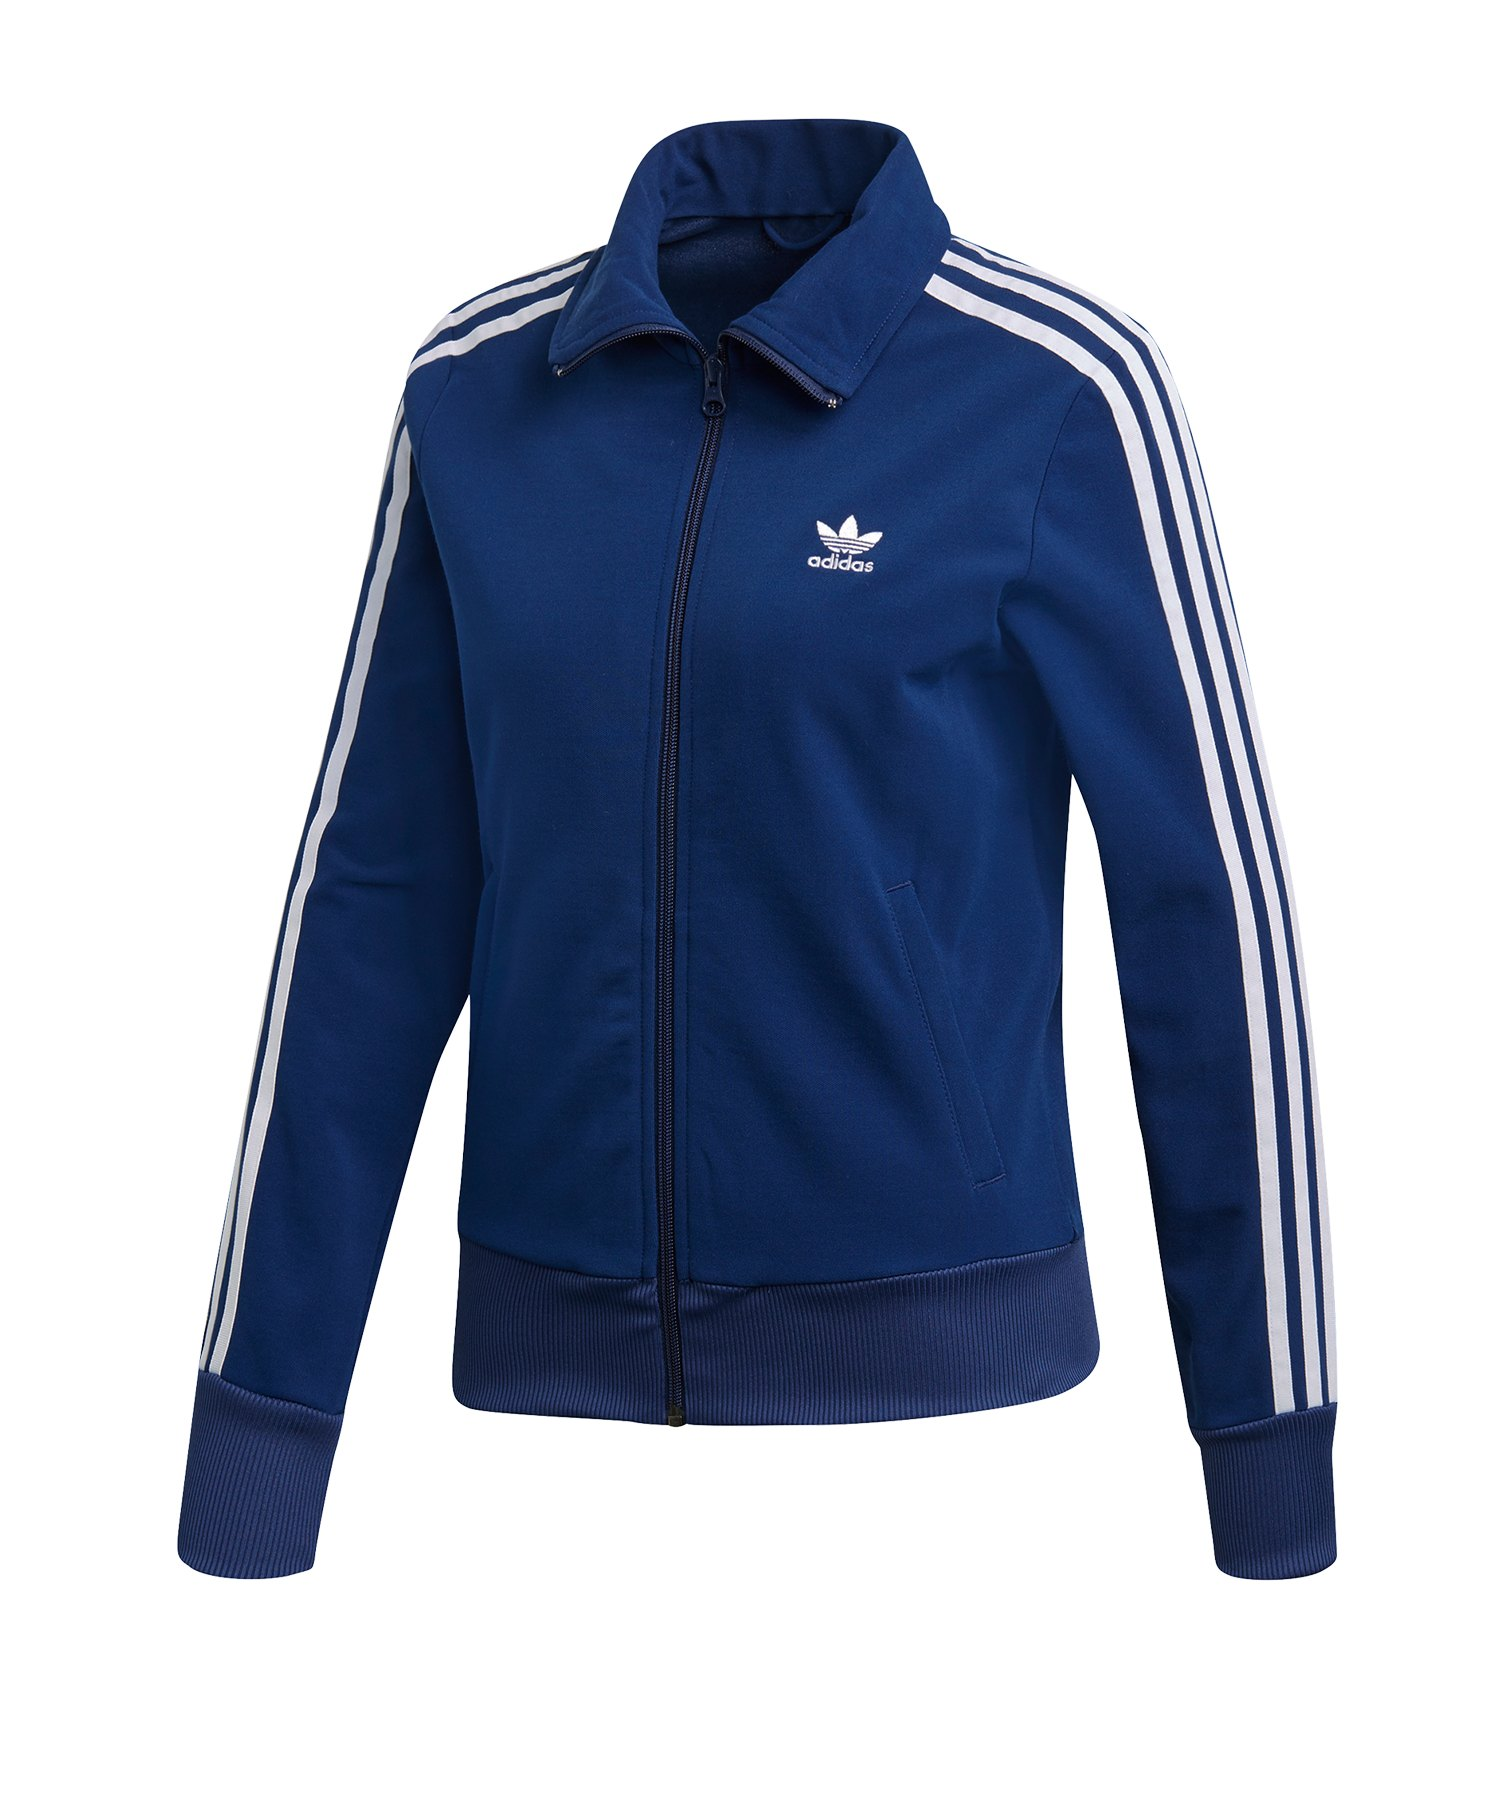 best service bed9a 07093 adidas Originals Track Top Jacke Damen Dunkelblau